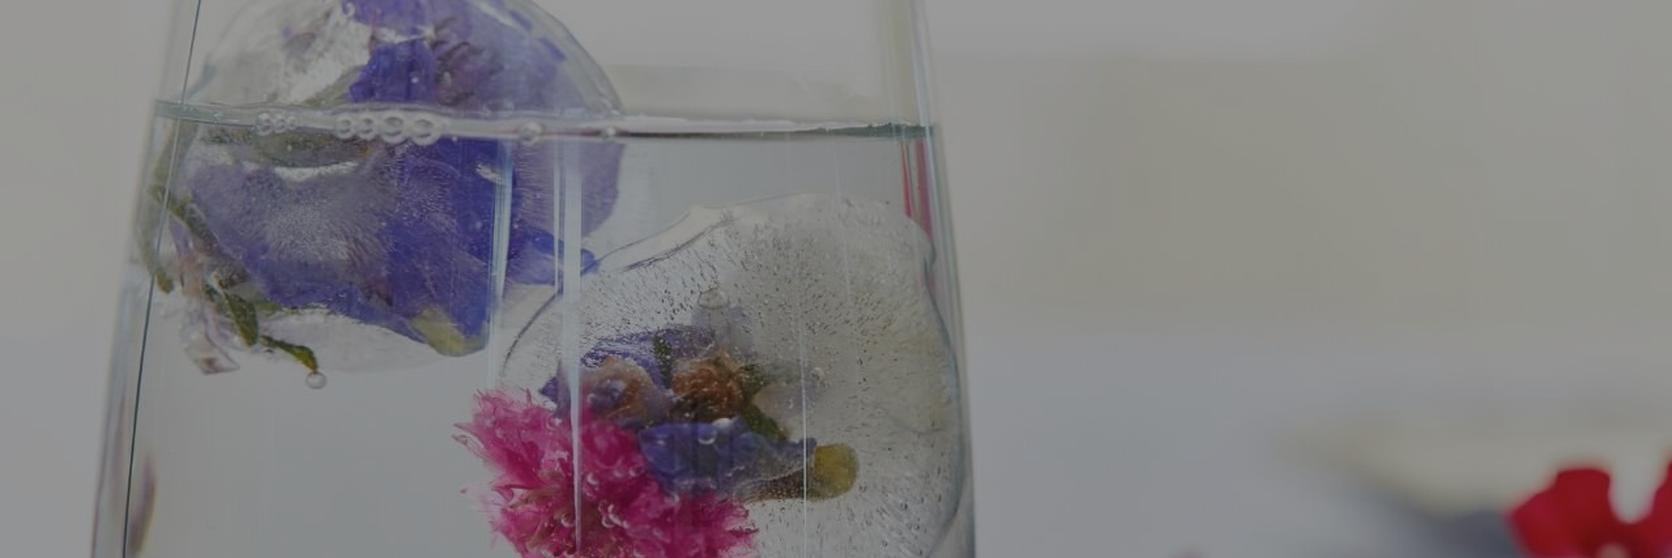 Floral-Ice-cubes-1